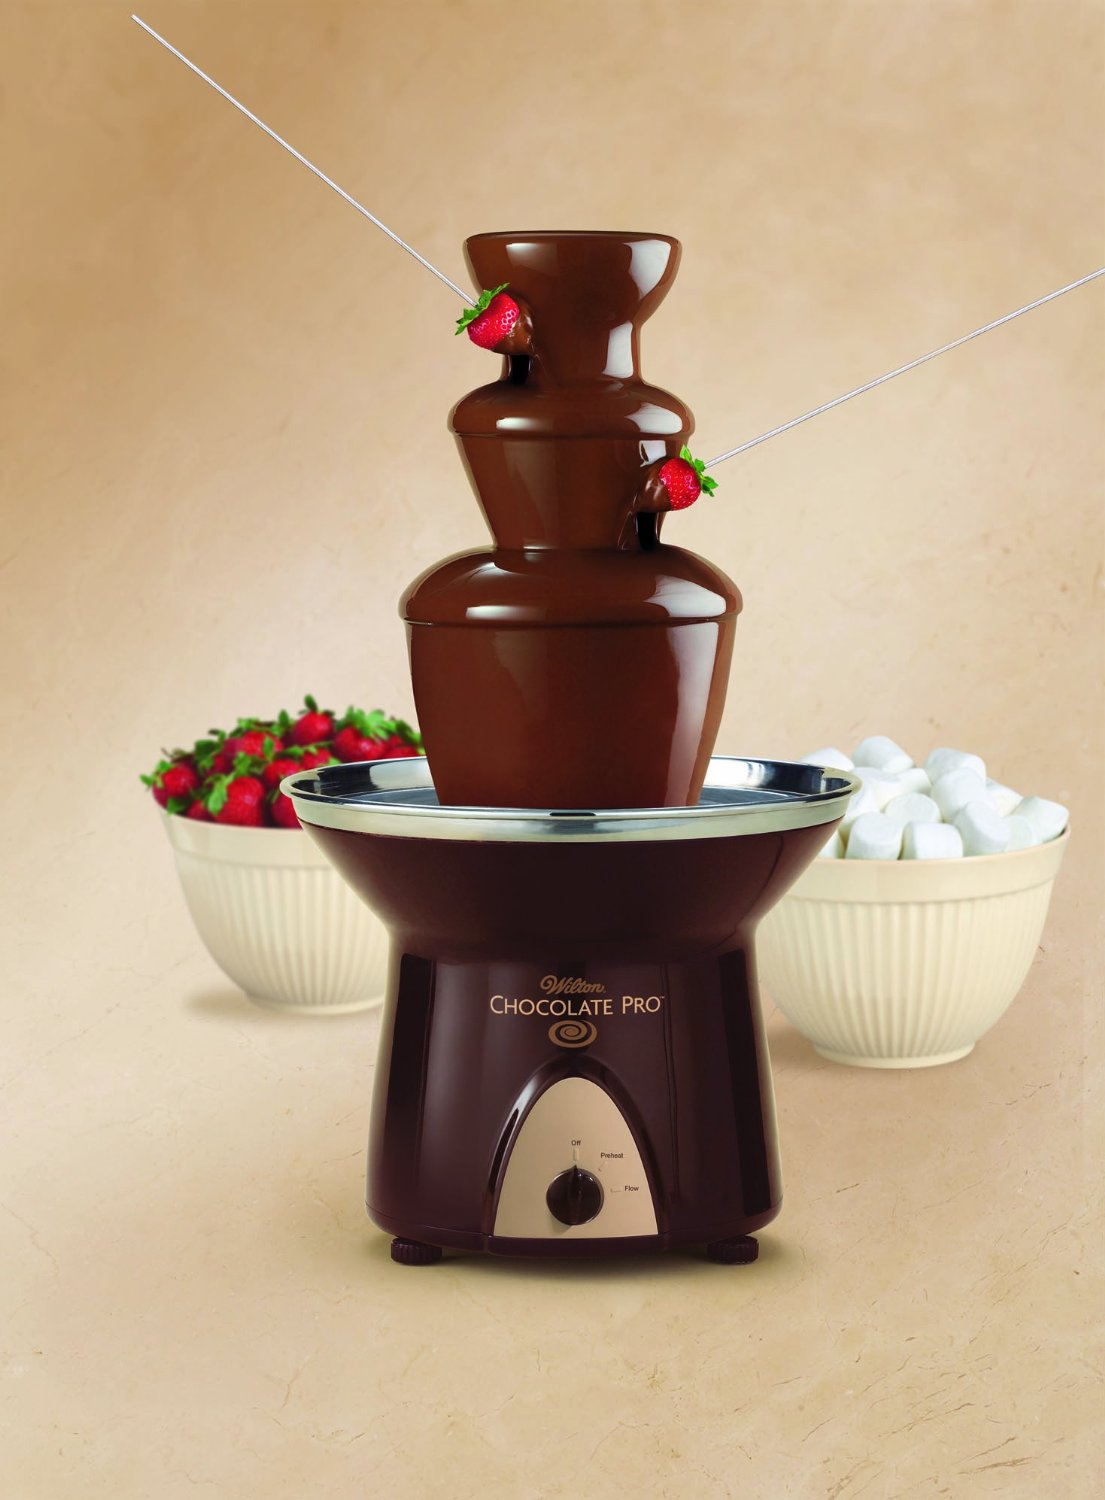 Best Chocolate To Use For Fountains